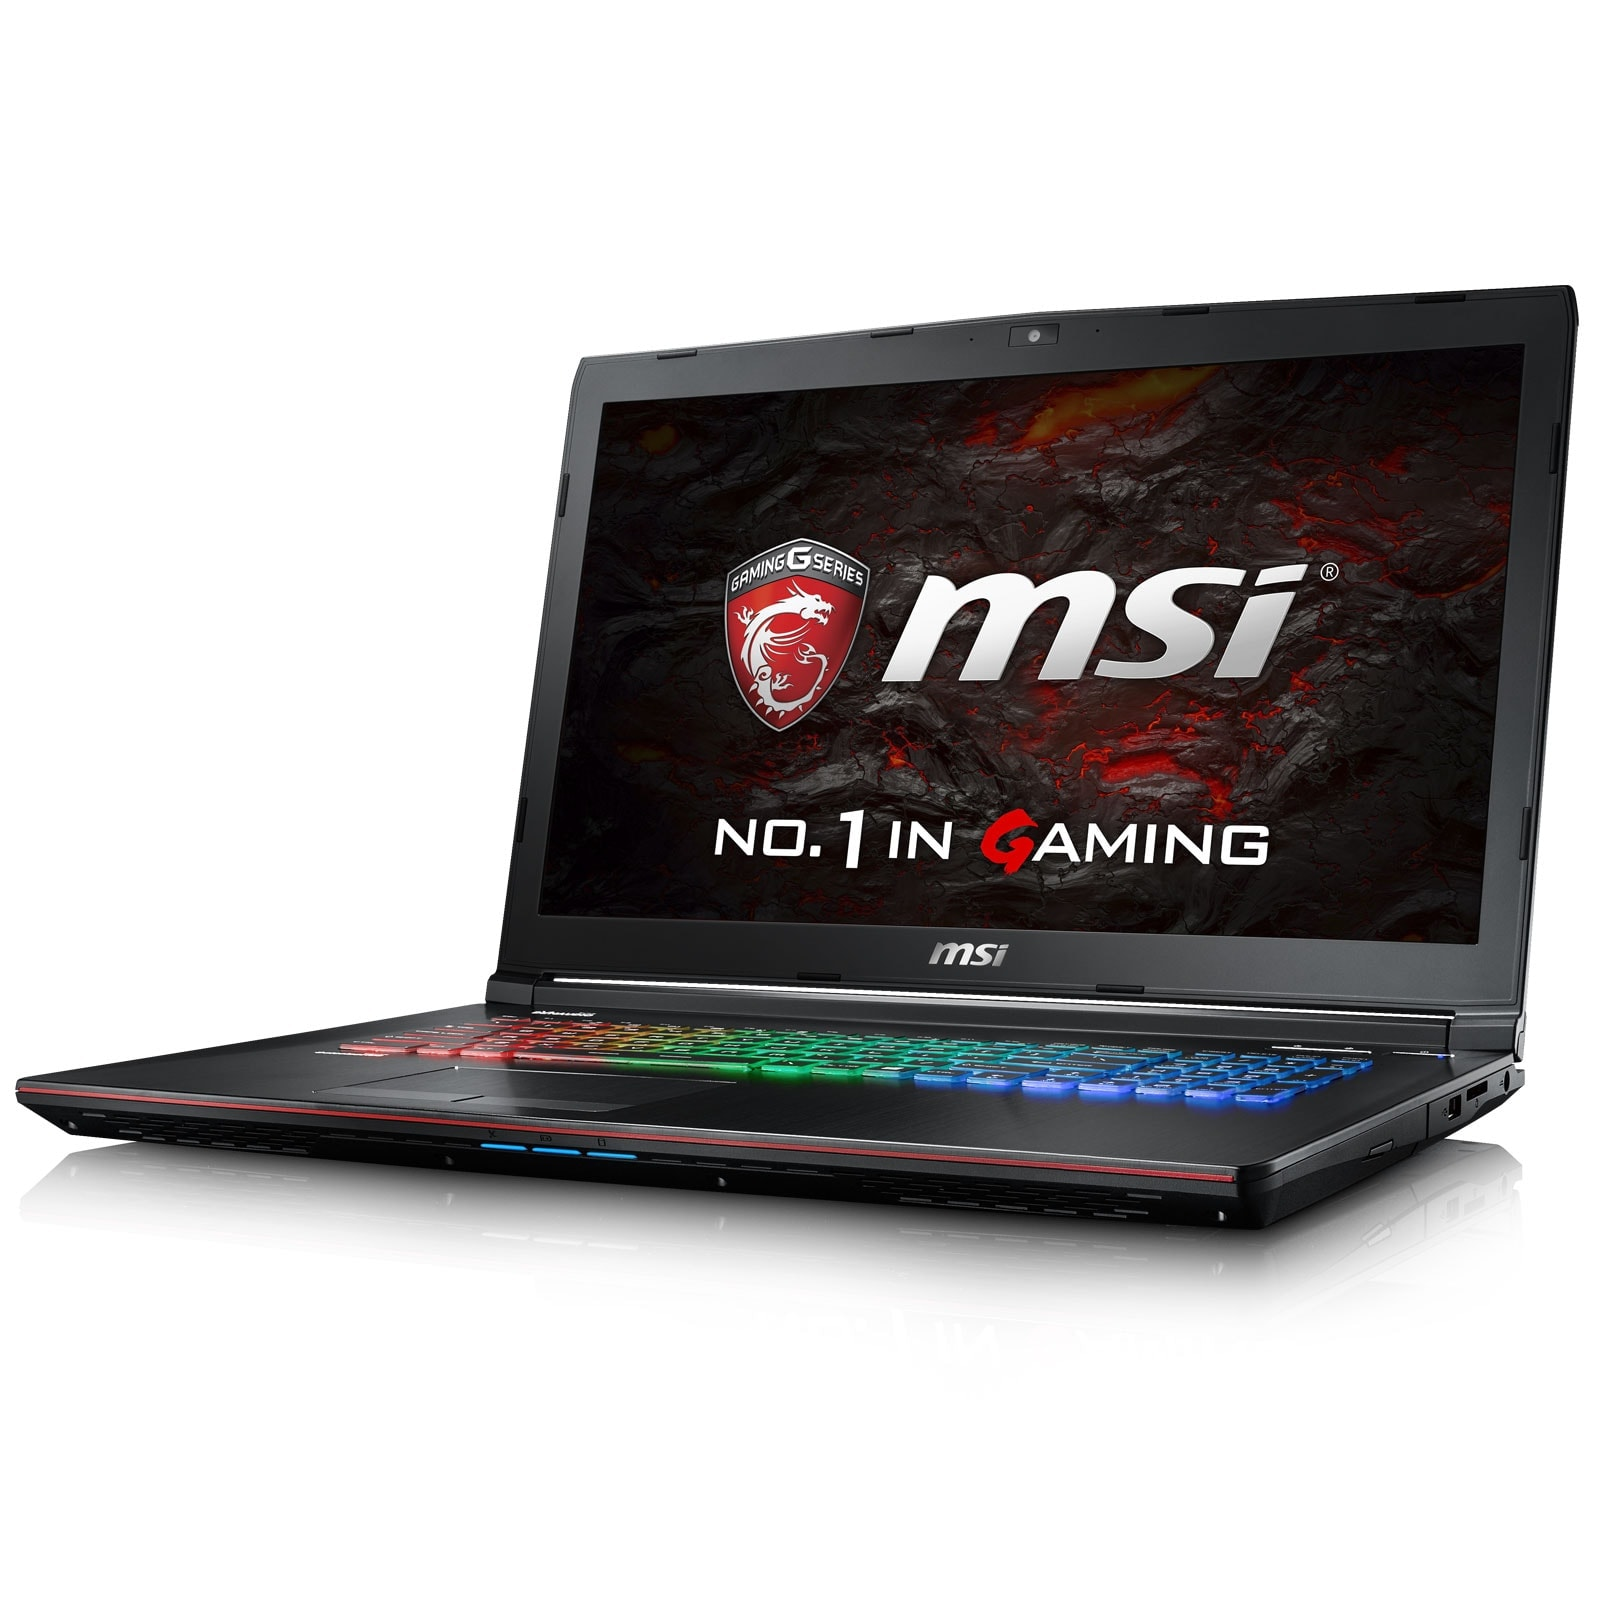 MSI 9S7-179B11-019 - PC portable MSI - Cybertek.fr - 1